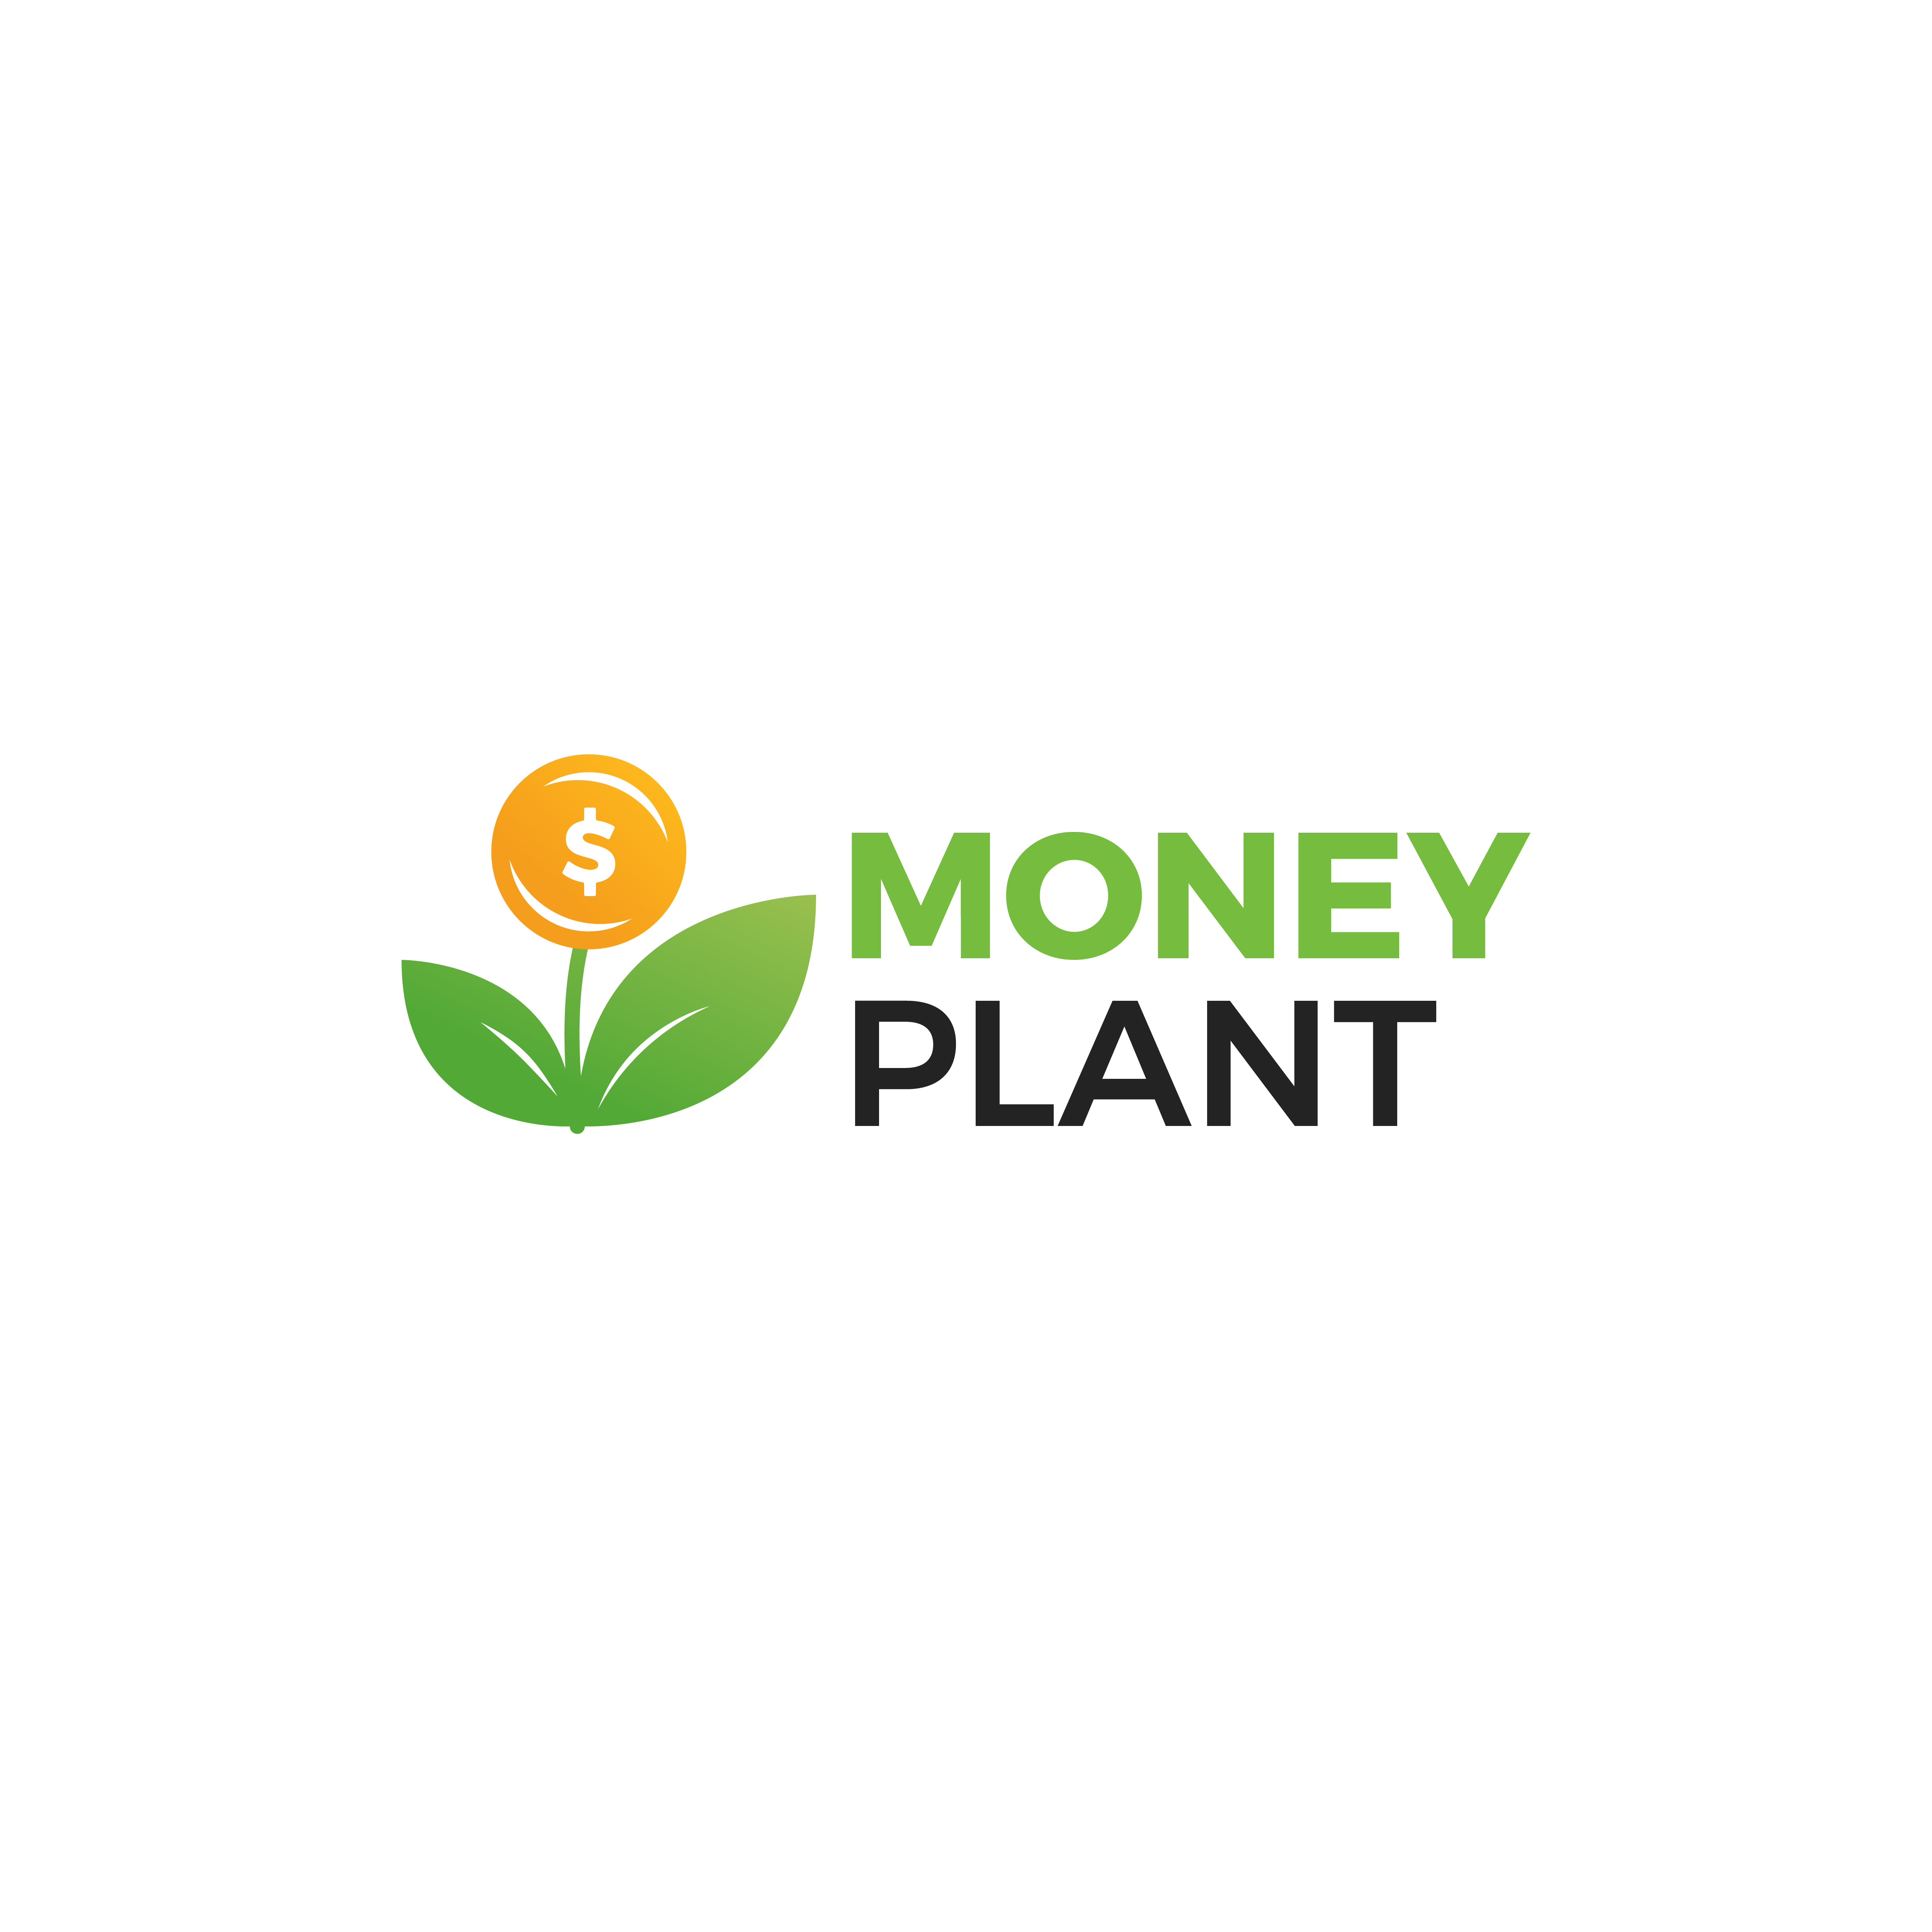 Money Plant Logo Growth Of Investments And Investments